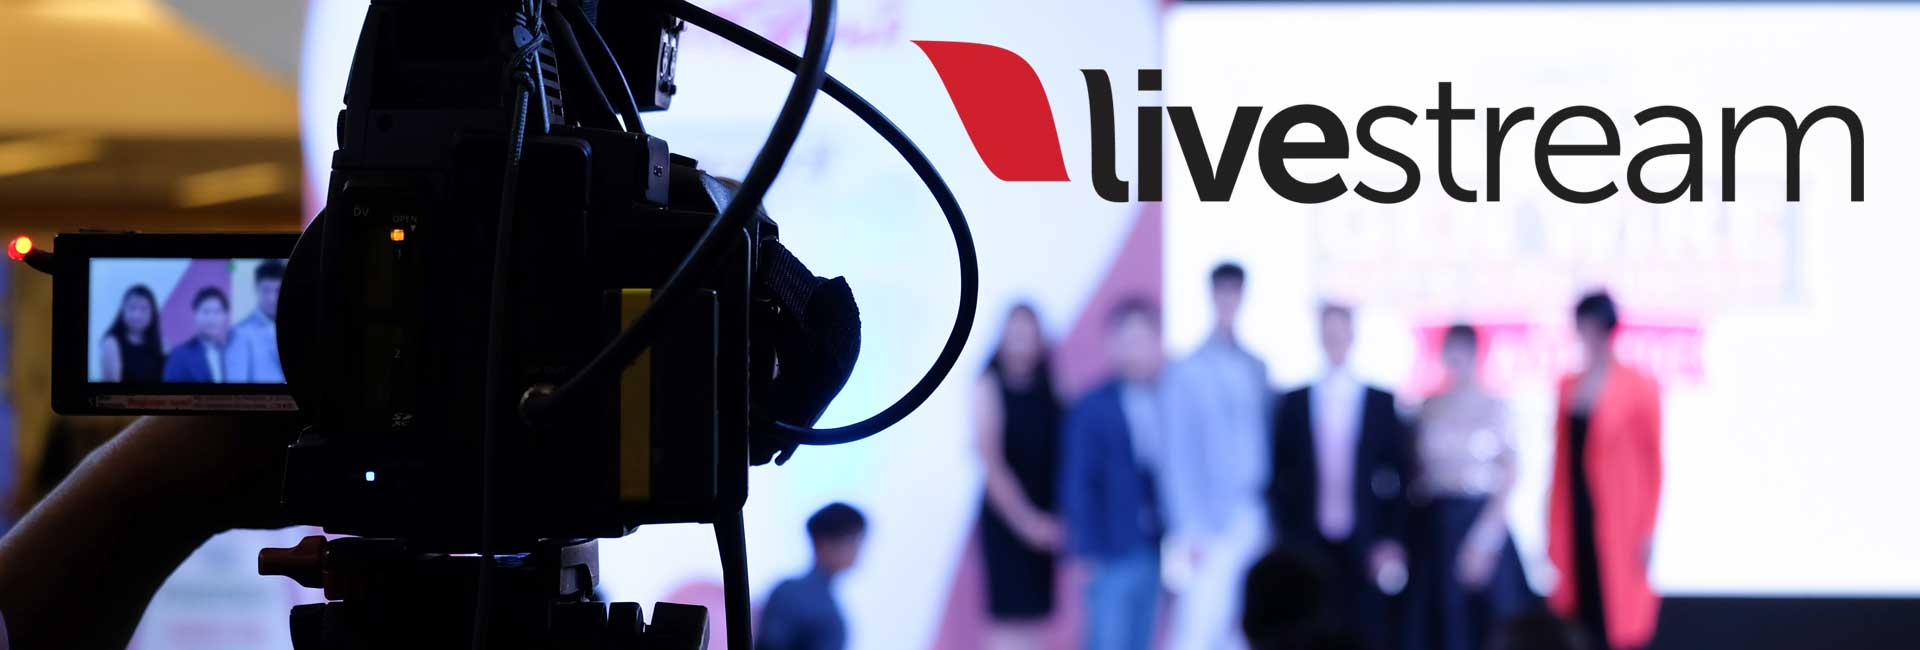 livestream webcast company uk livestream company webcasting events in the uk live streaming company to webcast to facebook 360 youtube live